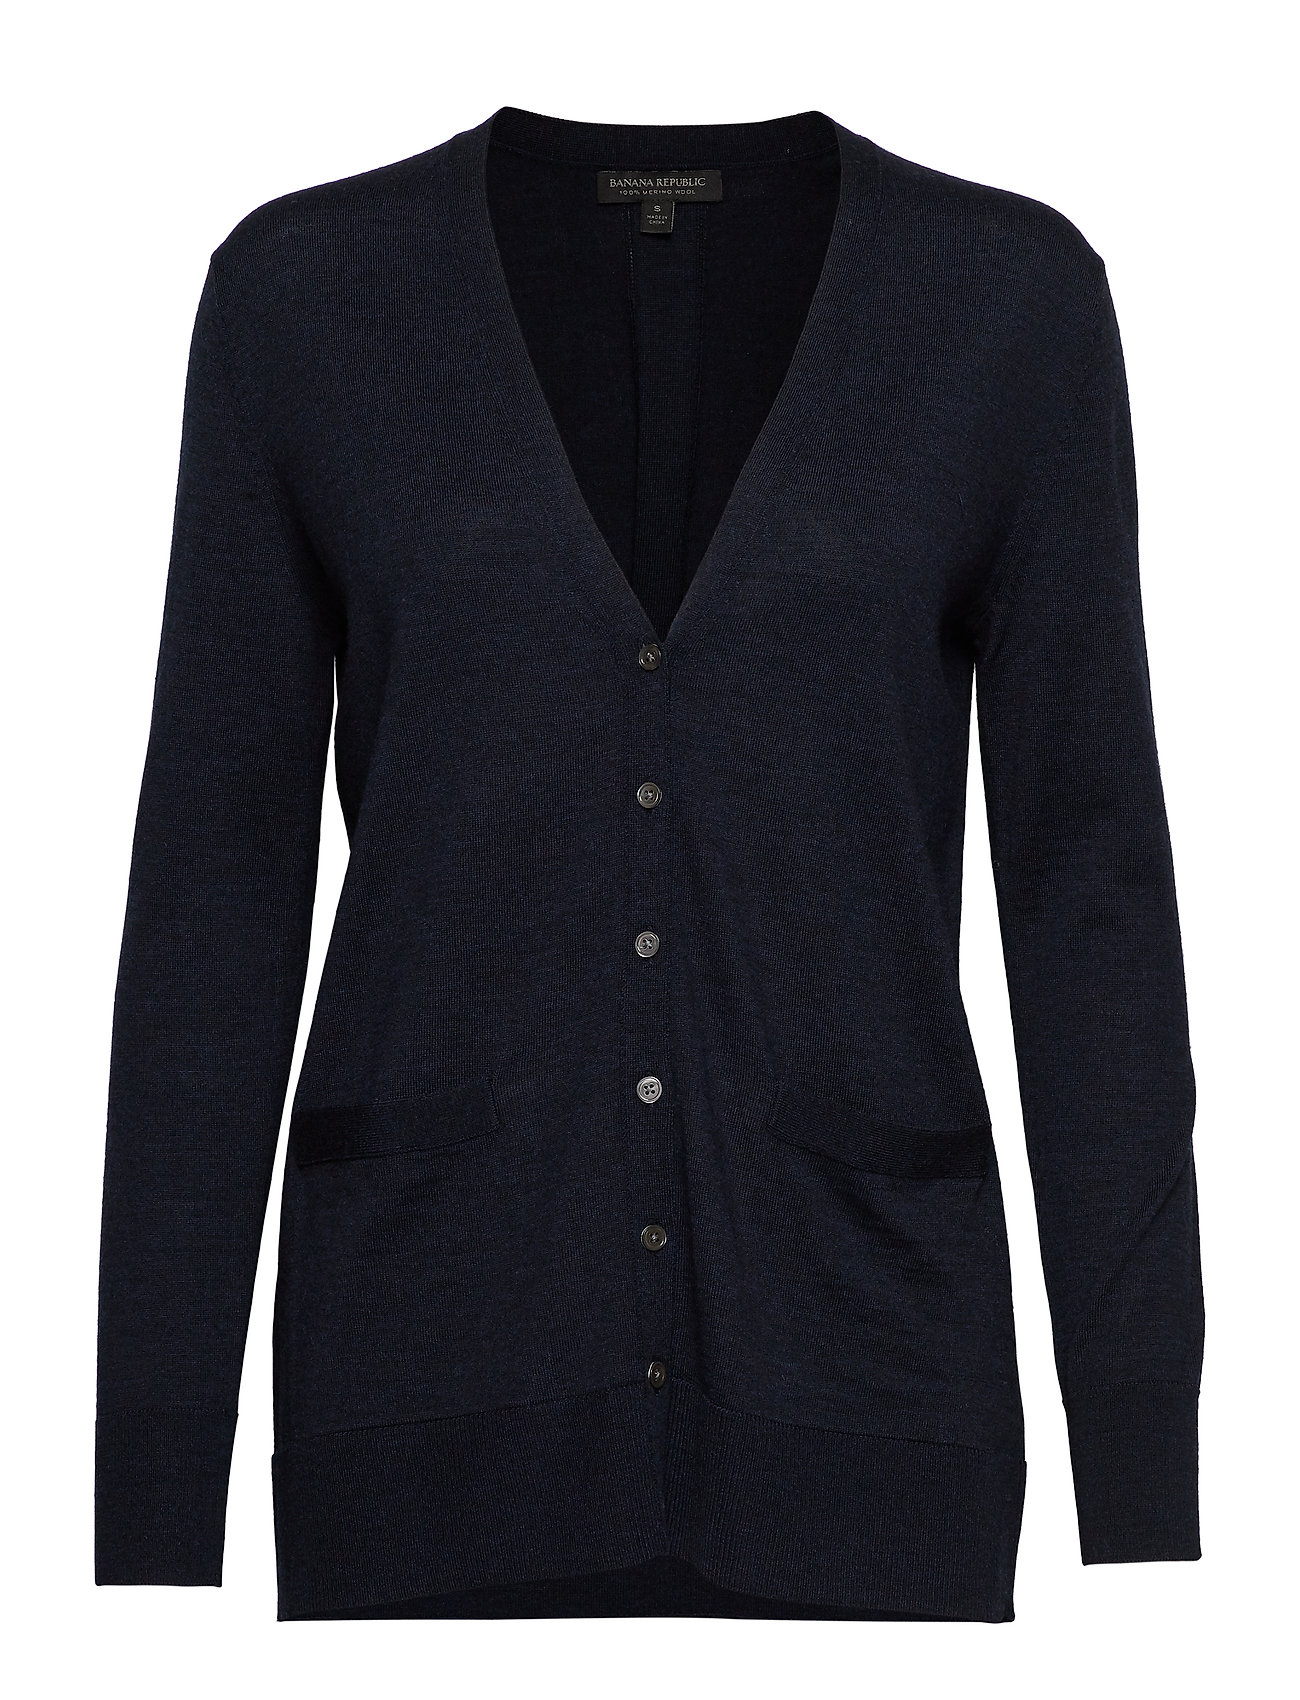 Banana Republic Washable Merino Boyfriend Cardigan Sweater - BASIC NAVY